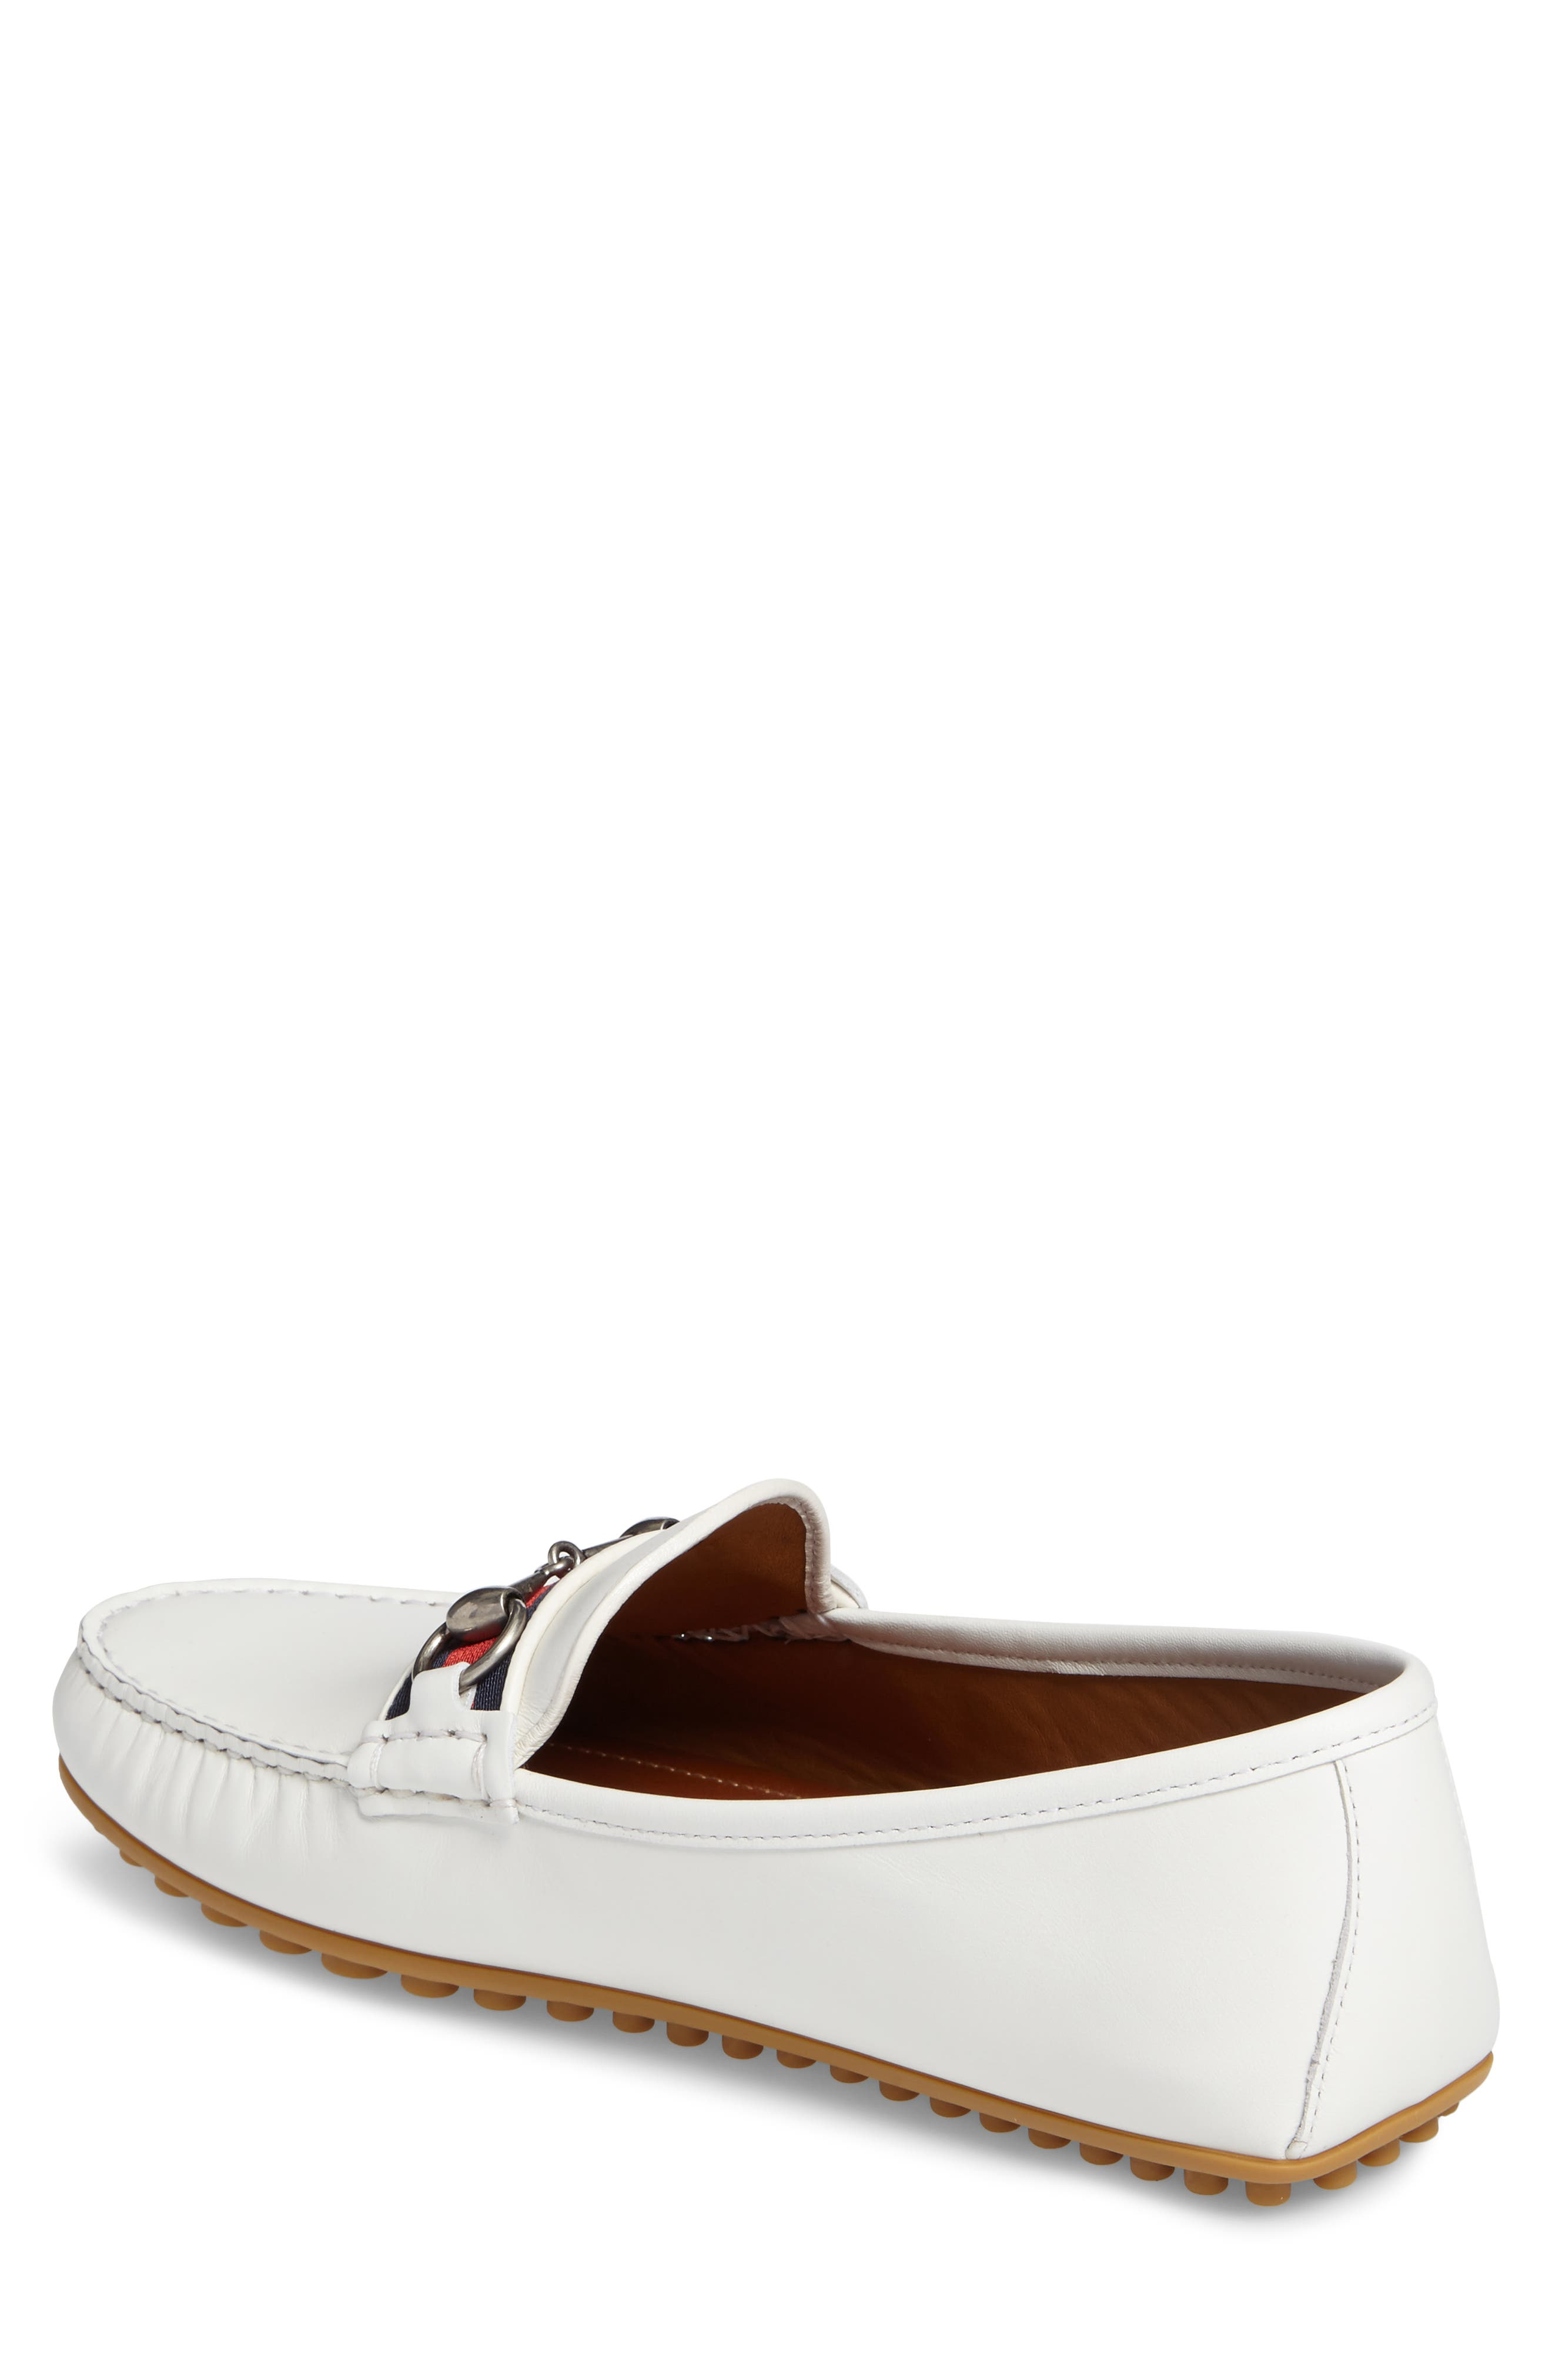 Kanye Bit Loafer,                             Alternate thumbnail 2, color,                             White Leather